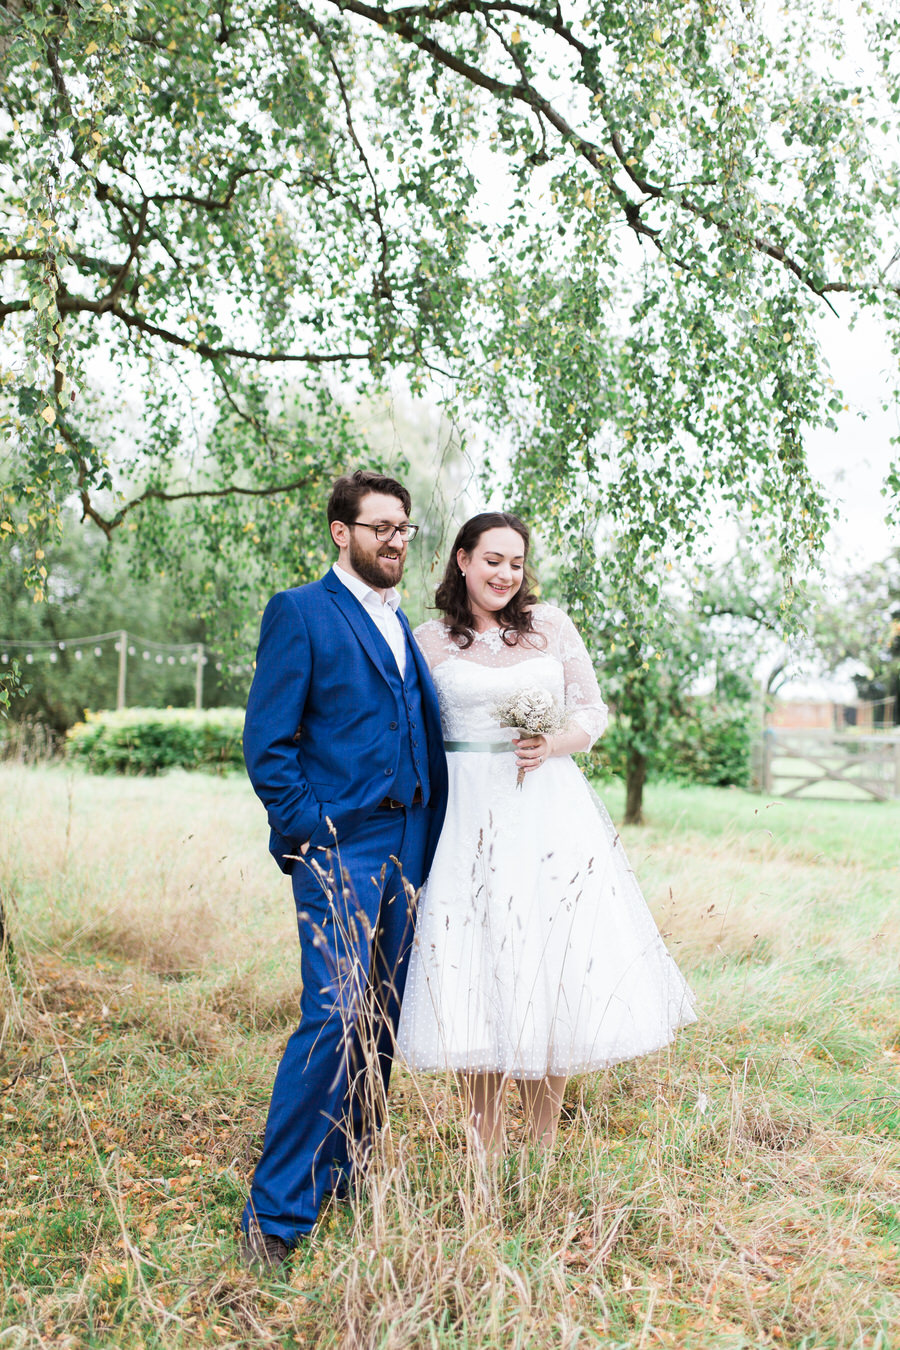 Vintage wedding ideas at The Great Lodge Essex with Gemma Giorgio Photography (26)